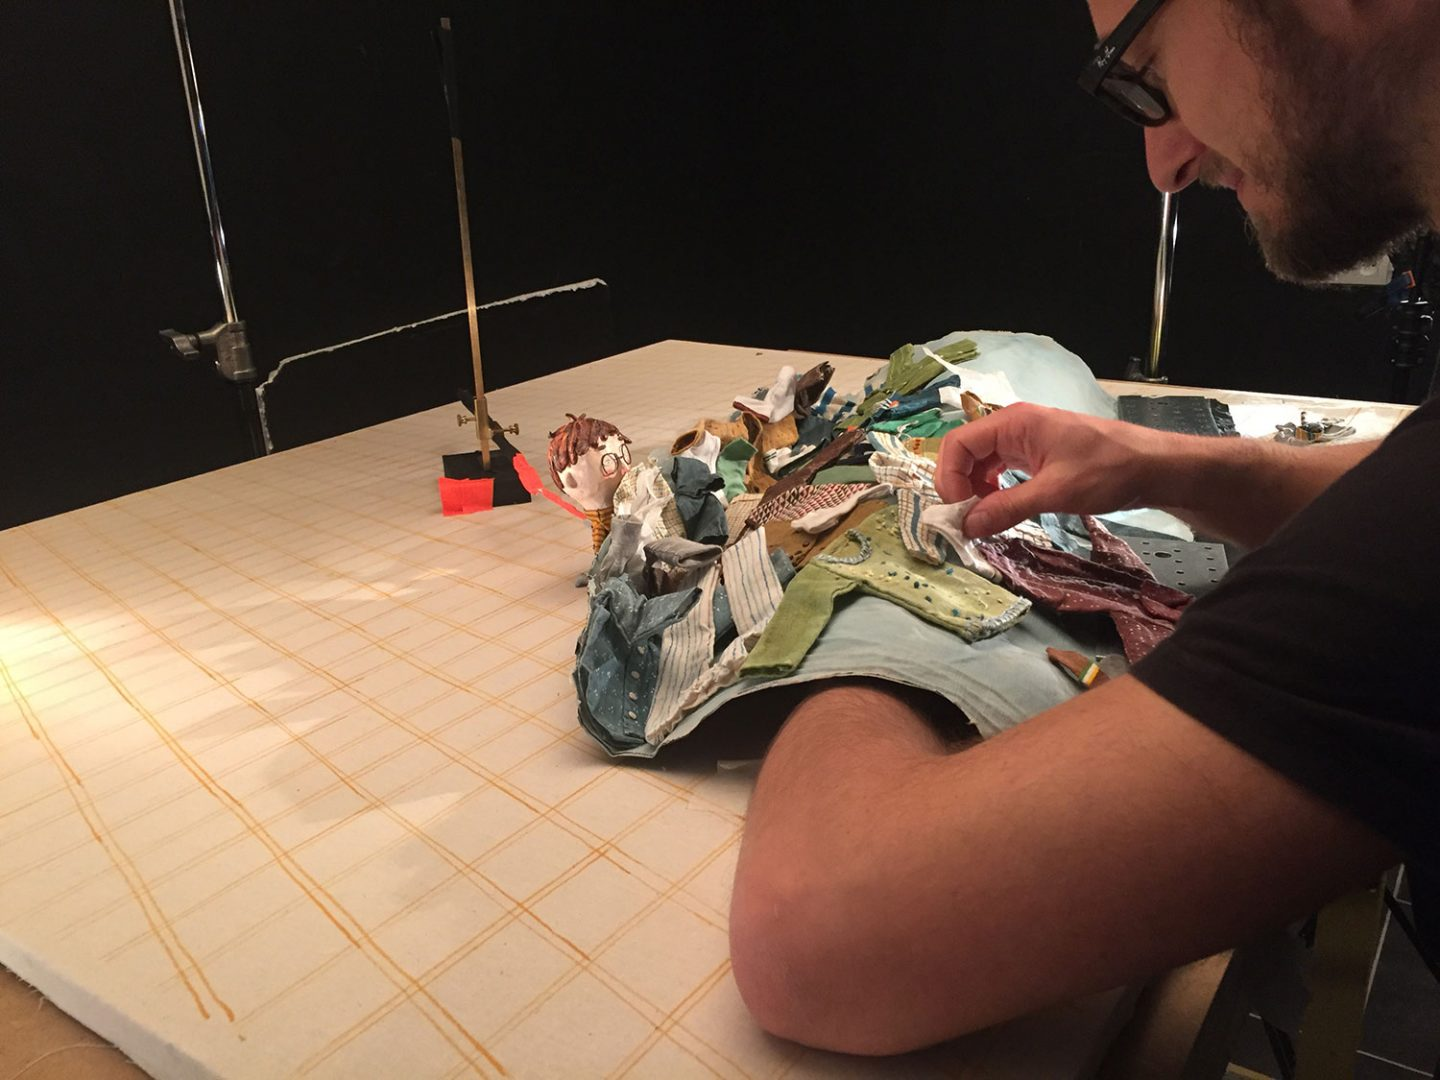 Sylvain Derosne (lead animator) animating the waves of clothes. All images in this piece: © Ikki Films.